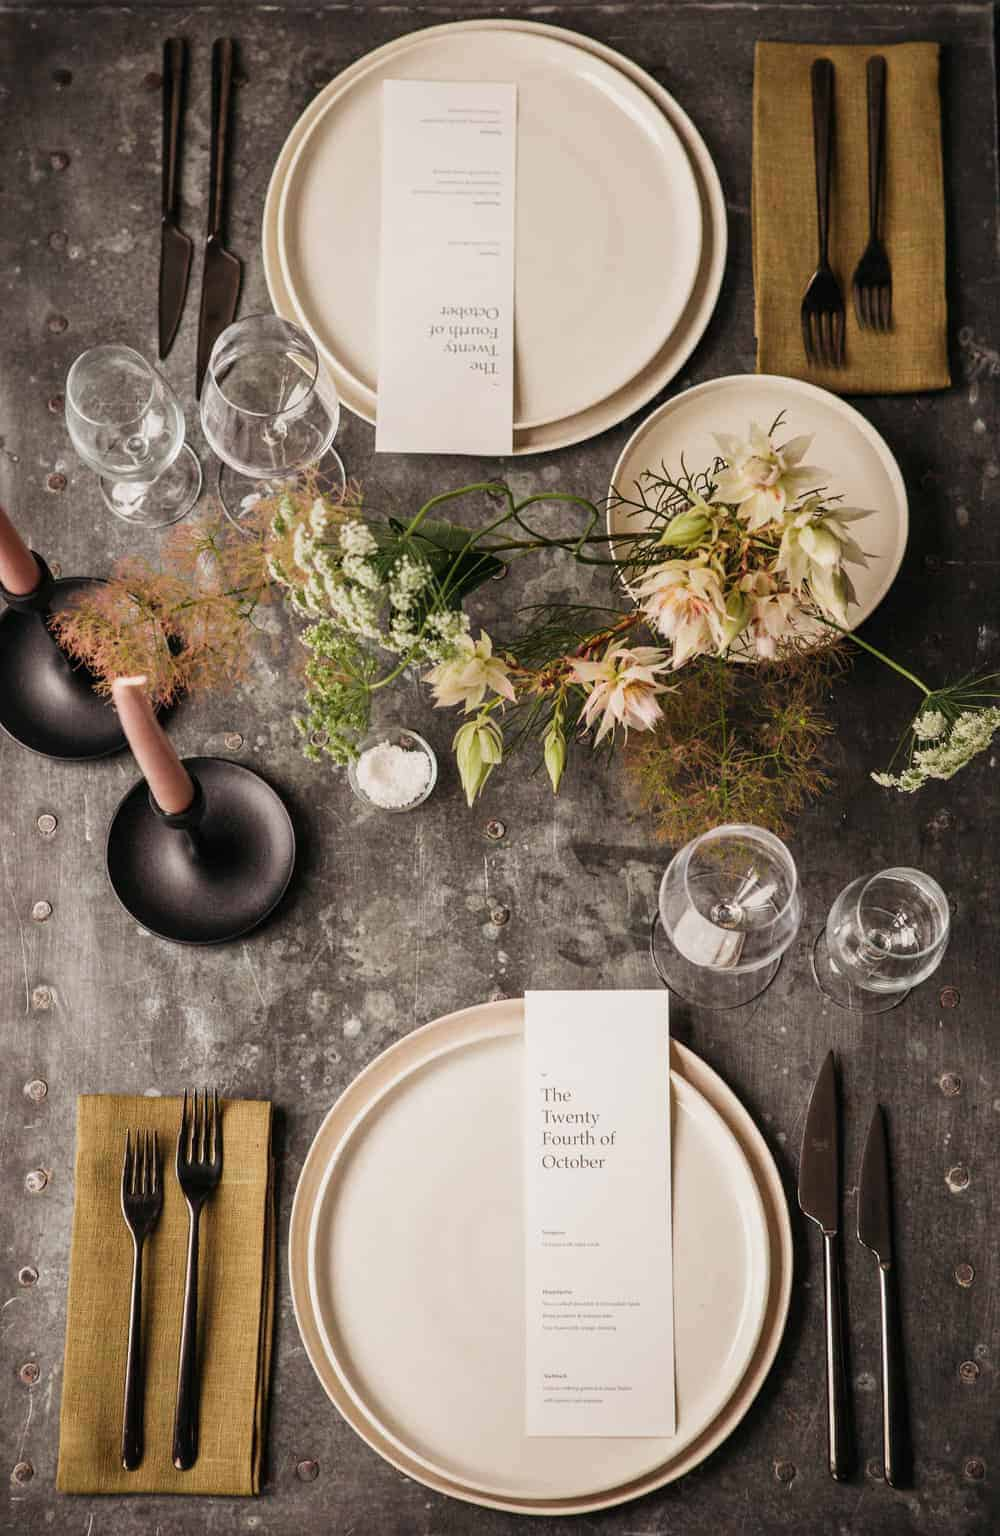 Moody Black table setting with pink plates and flowers.